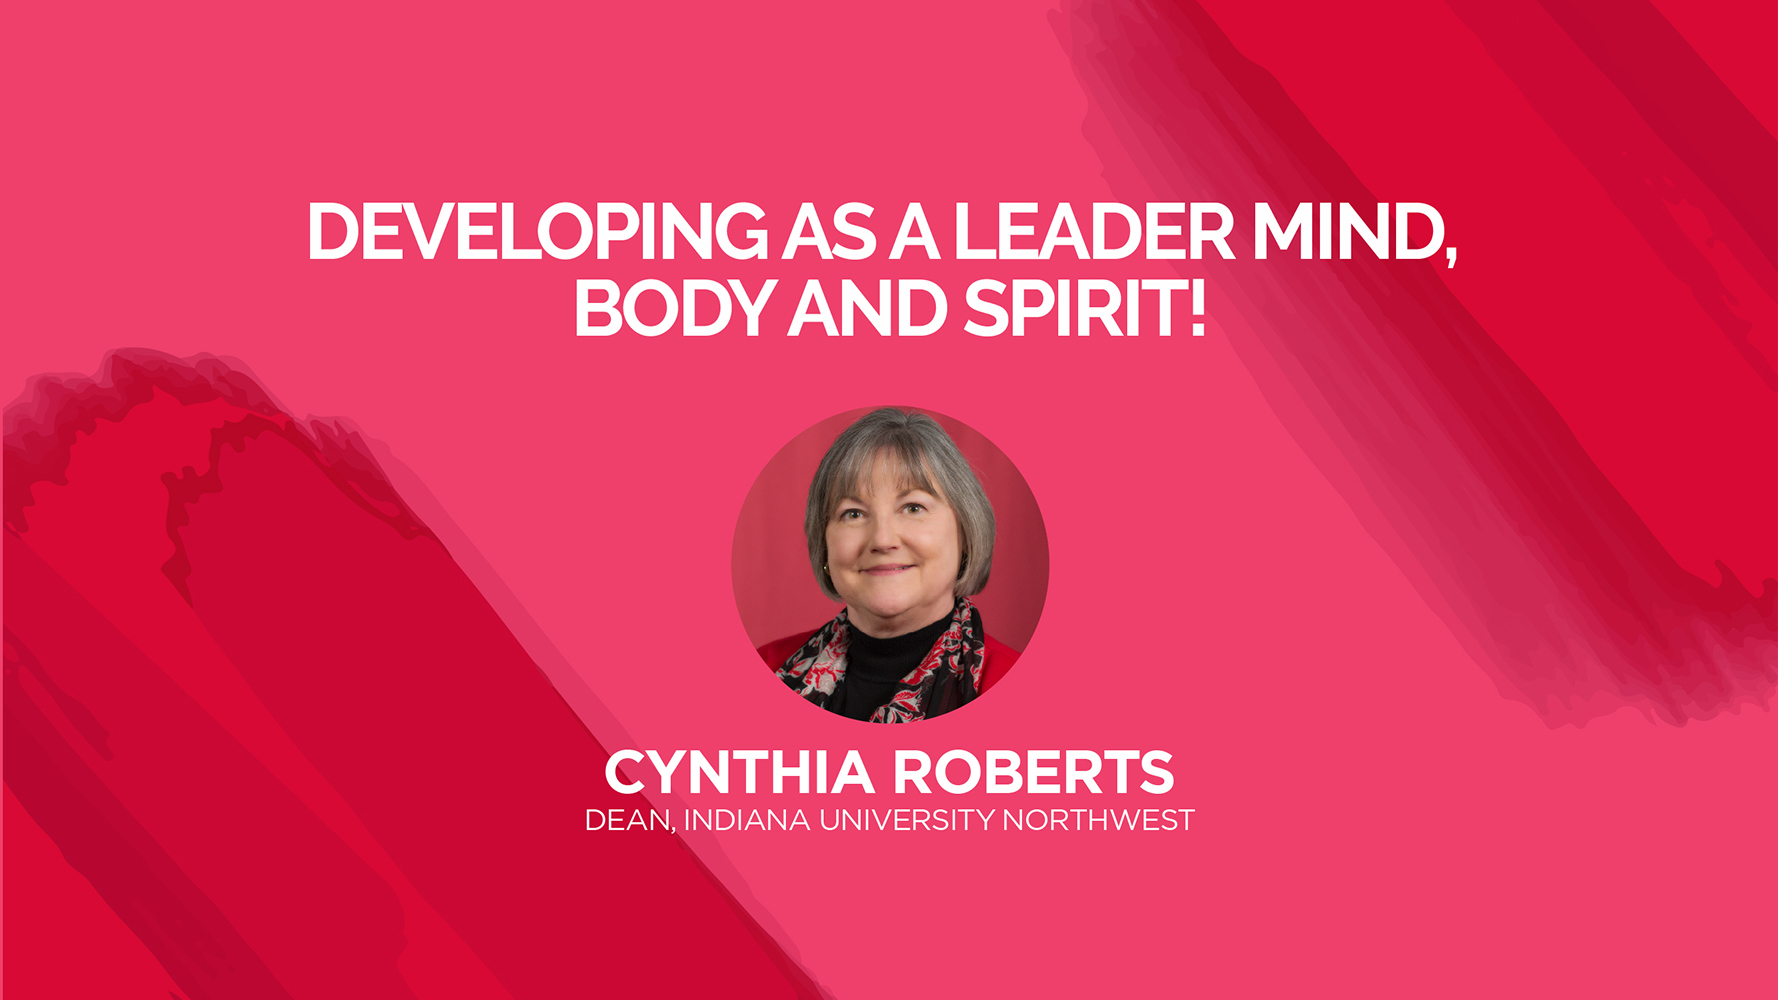 Developing as a leader mind, body and spirit